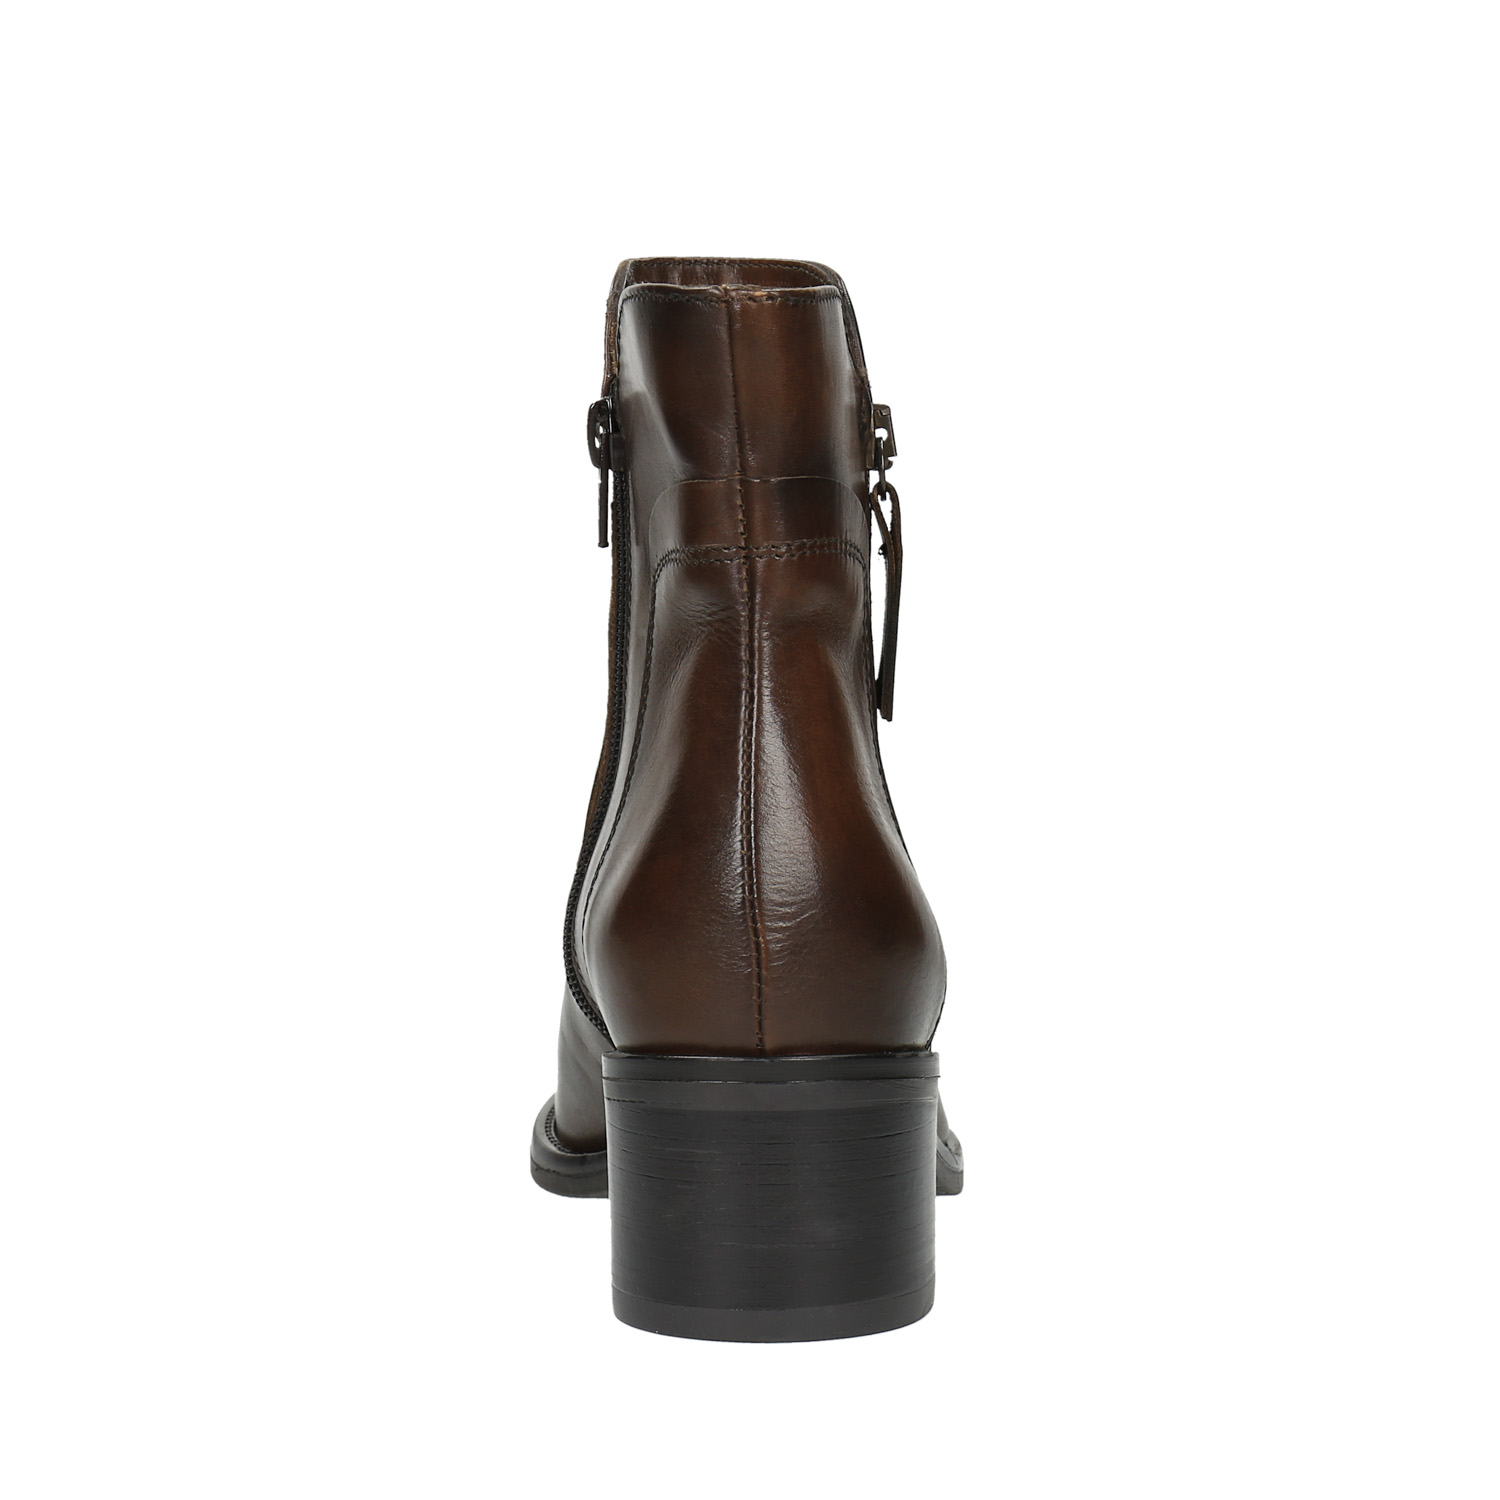 7e73ec25685 ... Leather ankle boots with zippers bata, brown , 694-4600 - 17 ...